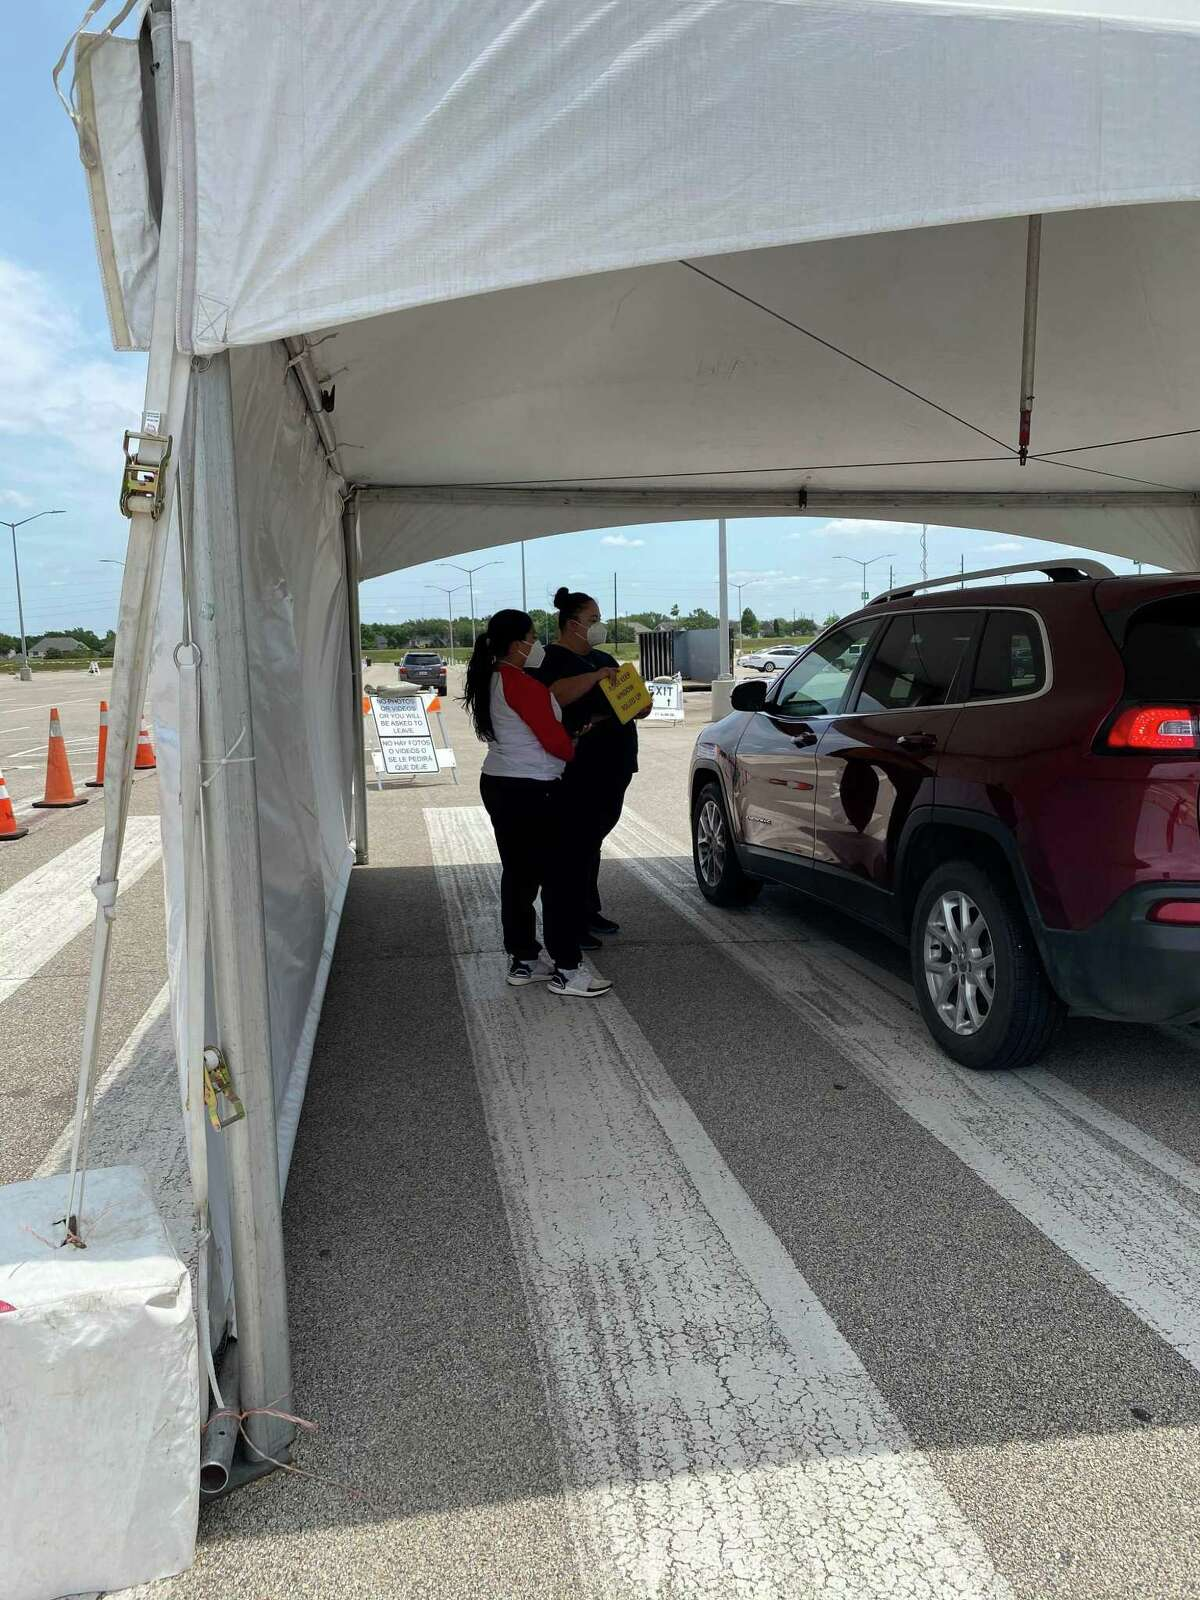 Fort Bend County opened a COVID-19 testing site in the Sugar Land area in late April.